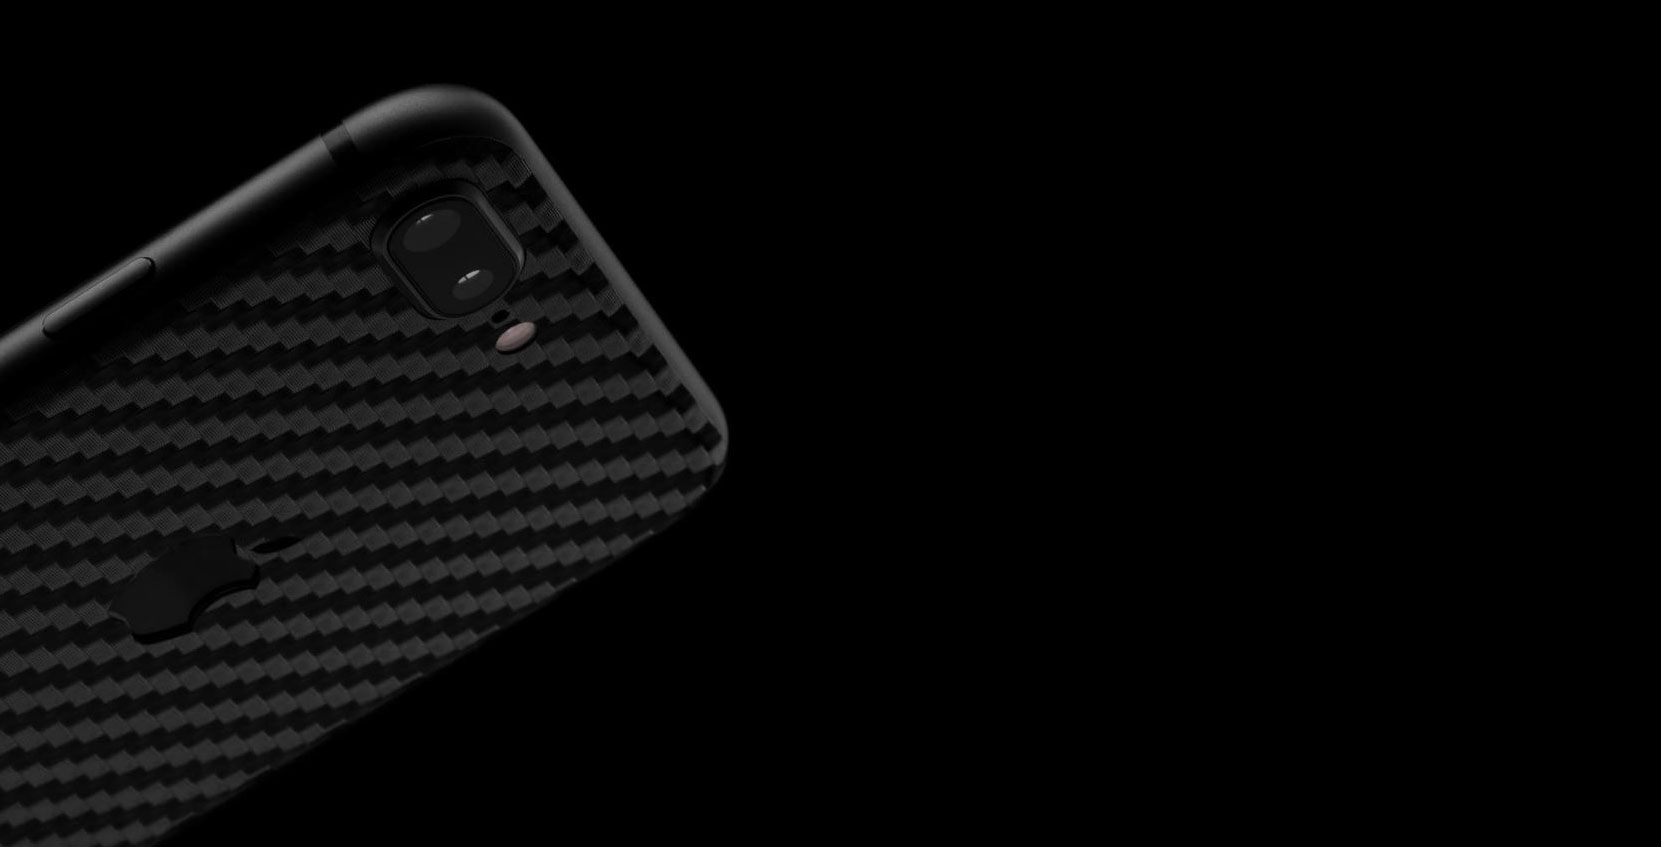 dbrand's free shipping promotion ends today, July 6th